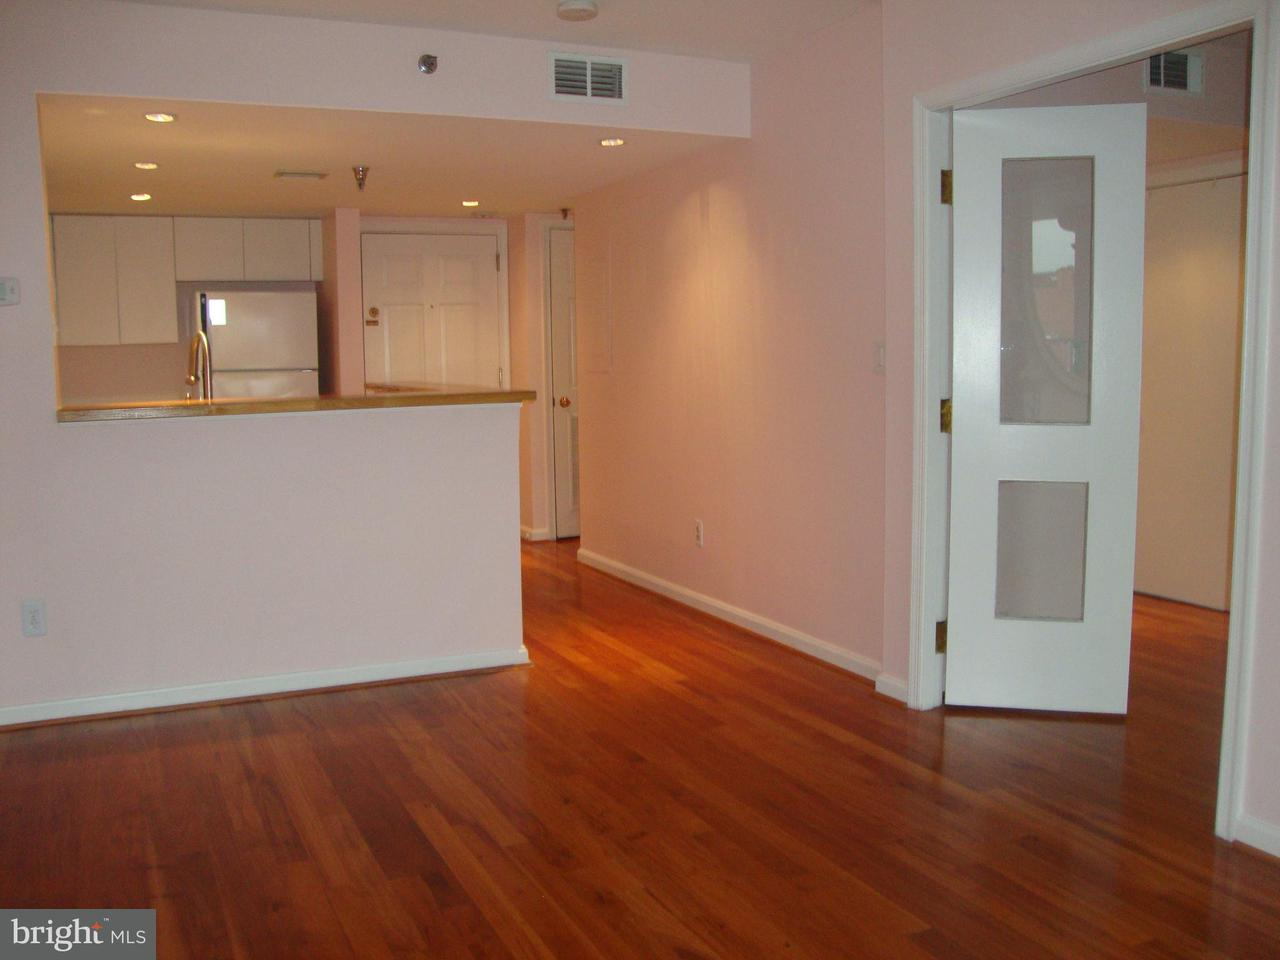 Additional photo for property listing at 701 Pennsylvania Ave Nw #1205 701 Pennsylvania Ave Nw #1205 华盛顿市, 哥伦比亚特区 20004 美国